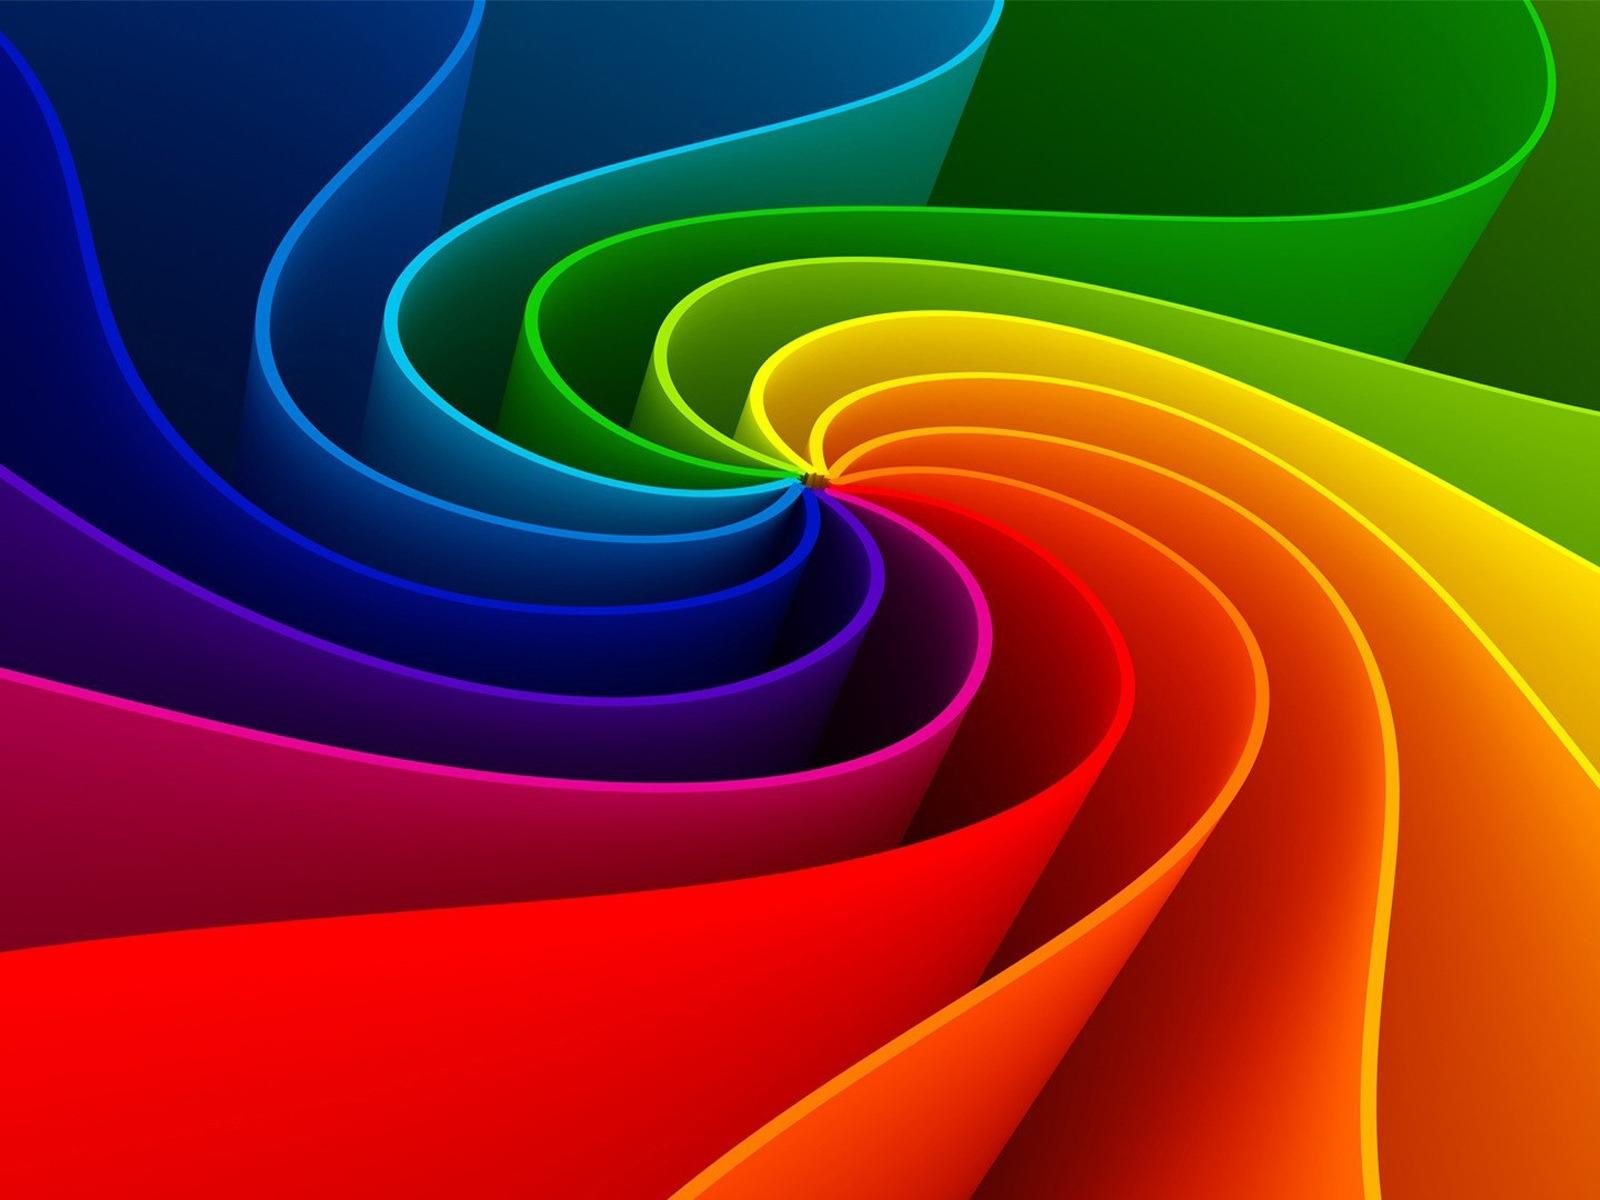 3D Abstract Rainbow 1600x1200 - Fondo de Pantalla #1773